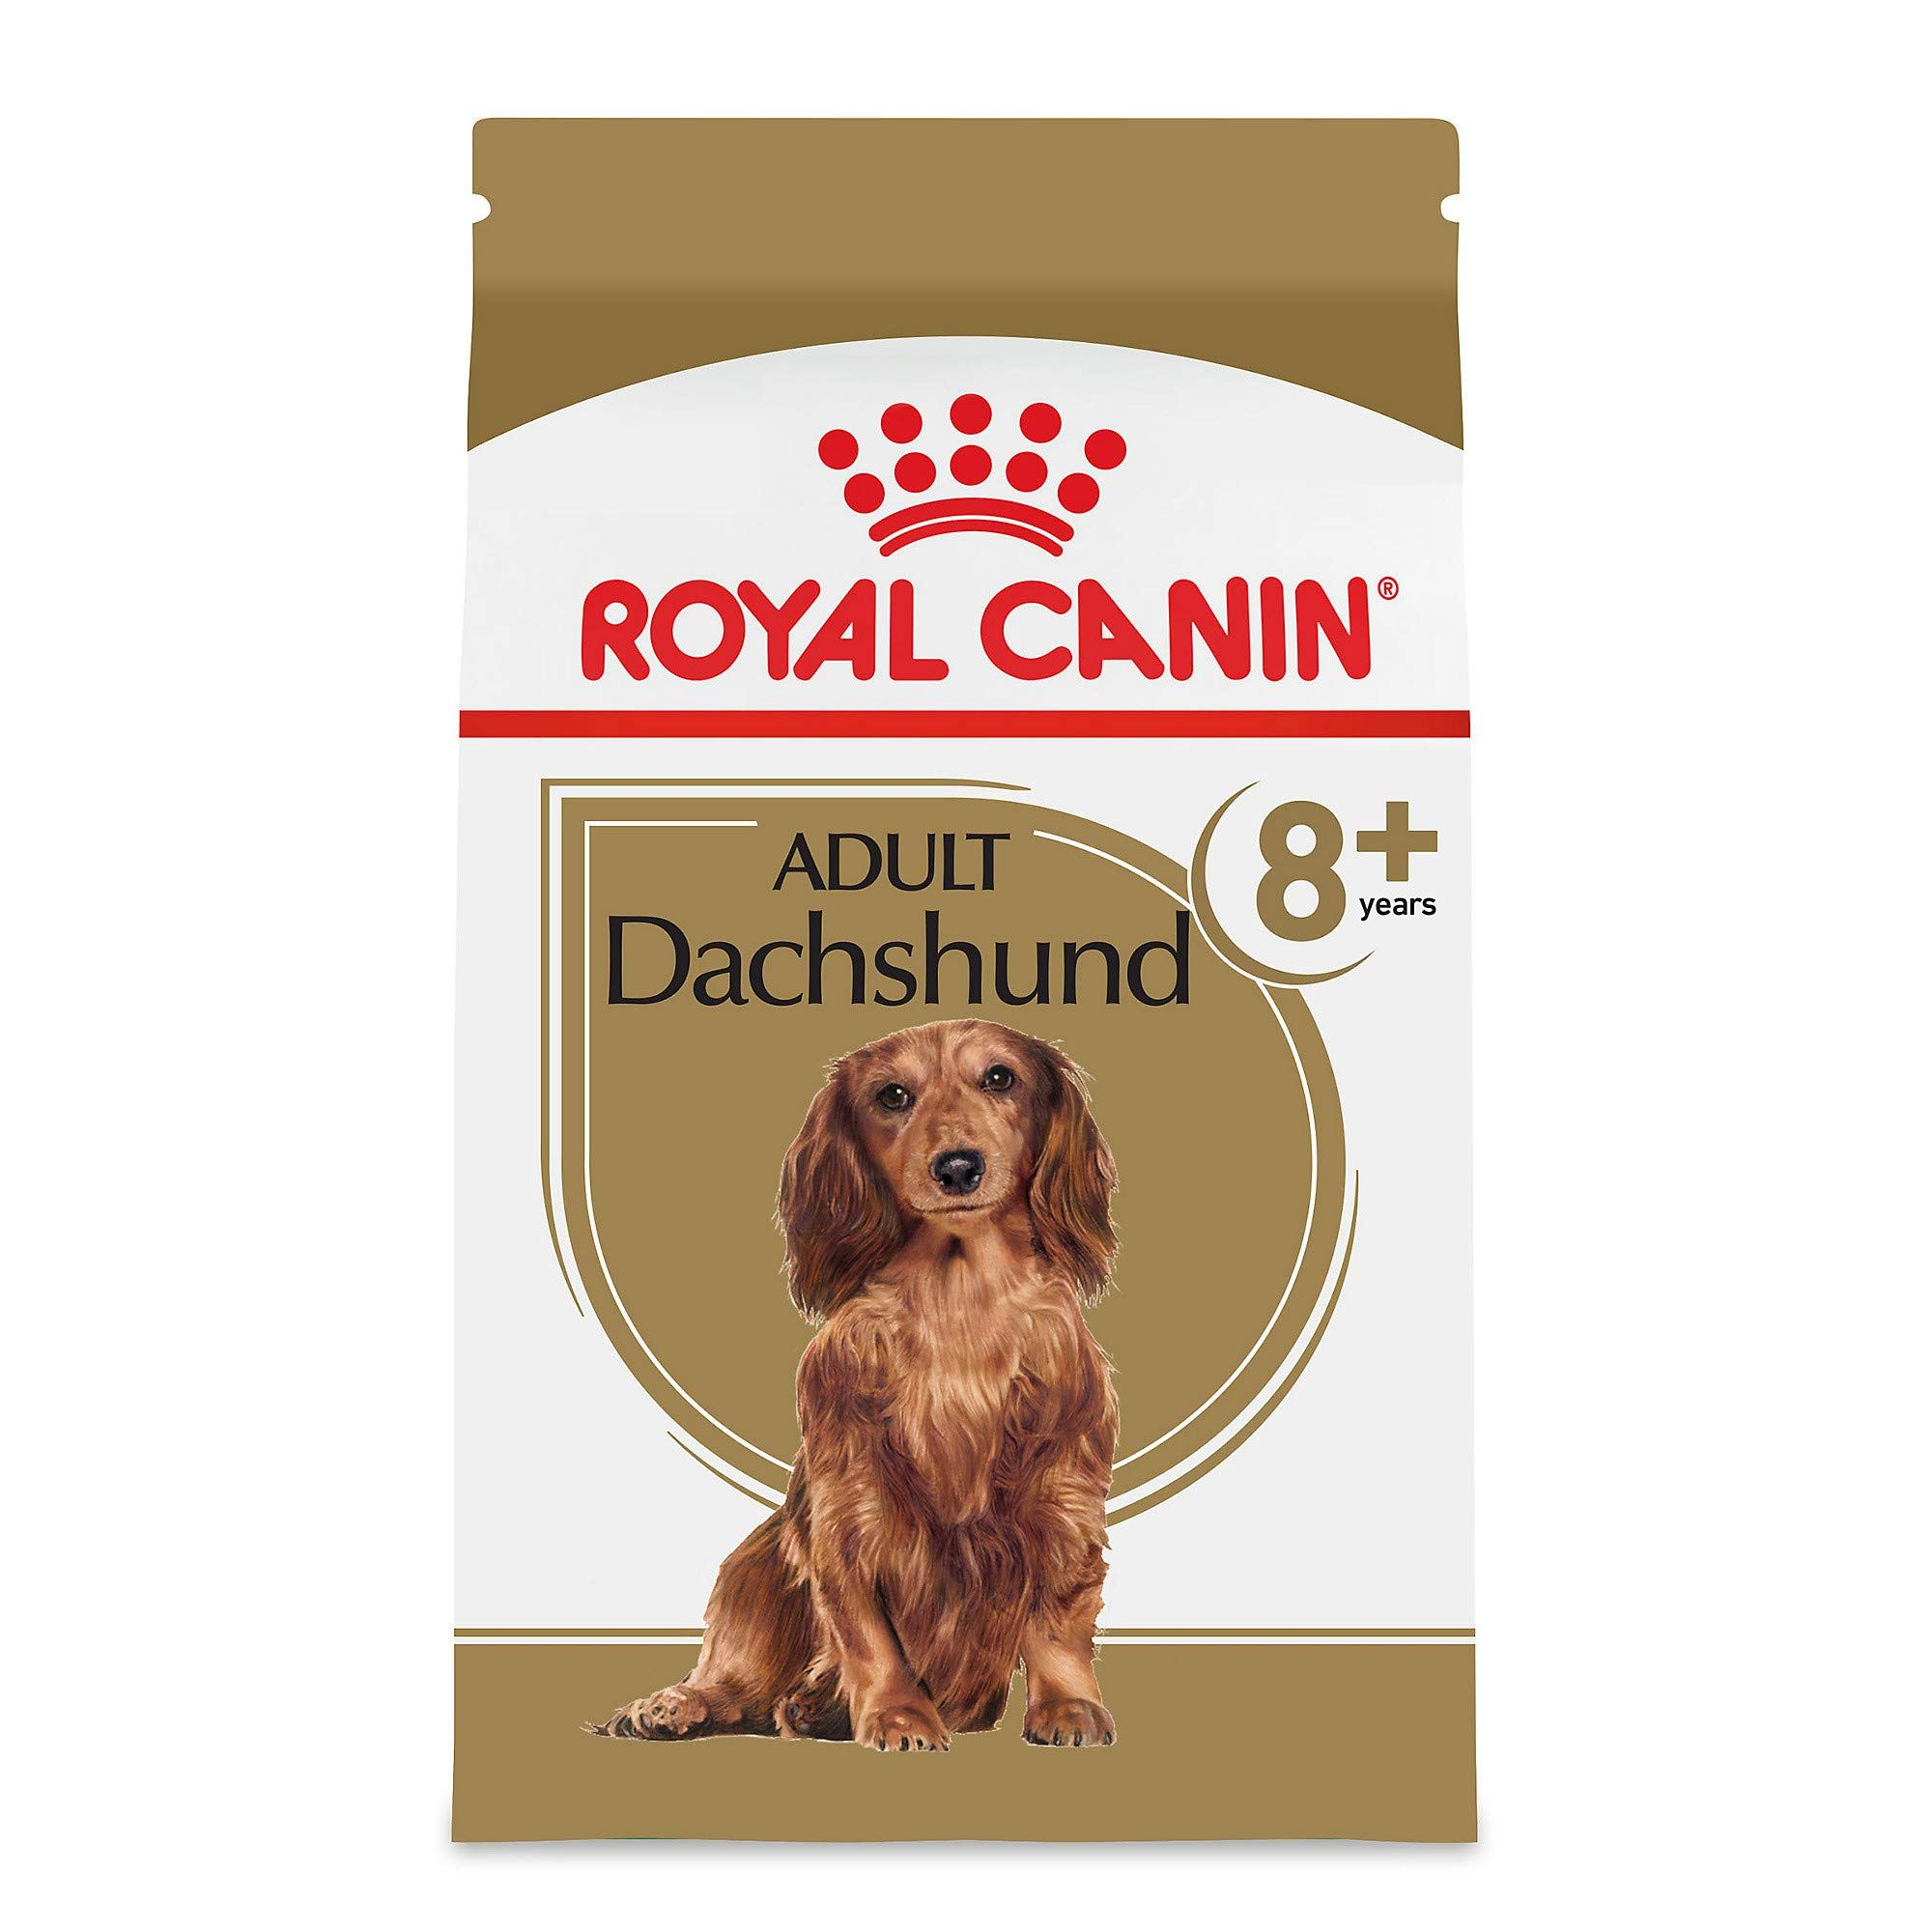 Royal Canin Breed Health Nutrition Dachshund 8 Adult Dry Dog Food Learn More By Visiting The Image Link In 2020 Dry Dog Food Dog Food Recipes Dog Supplies Online